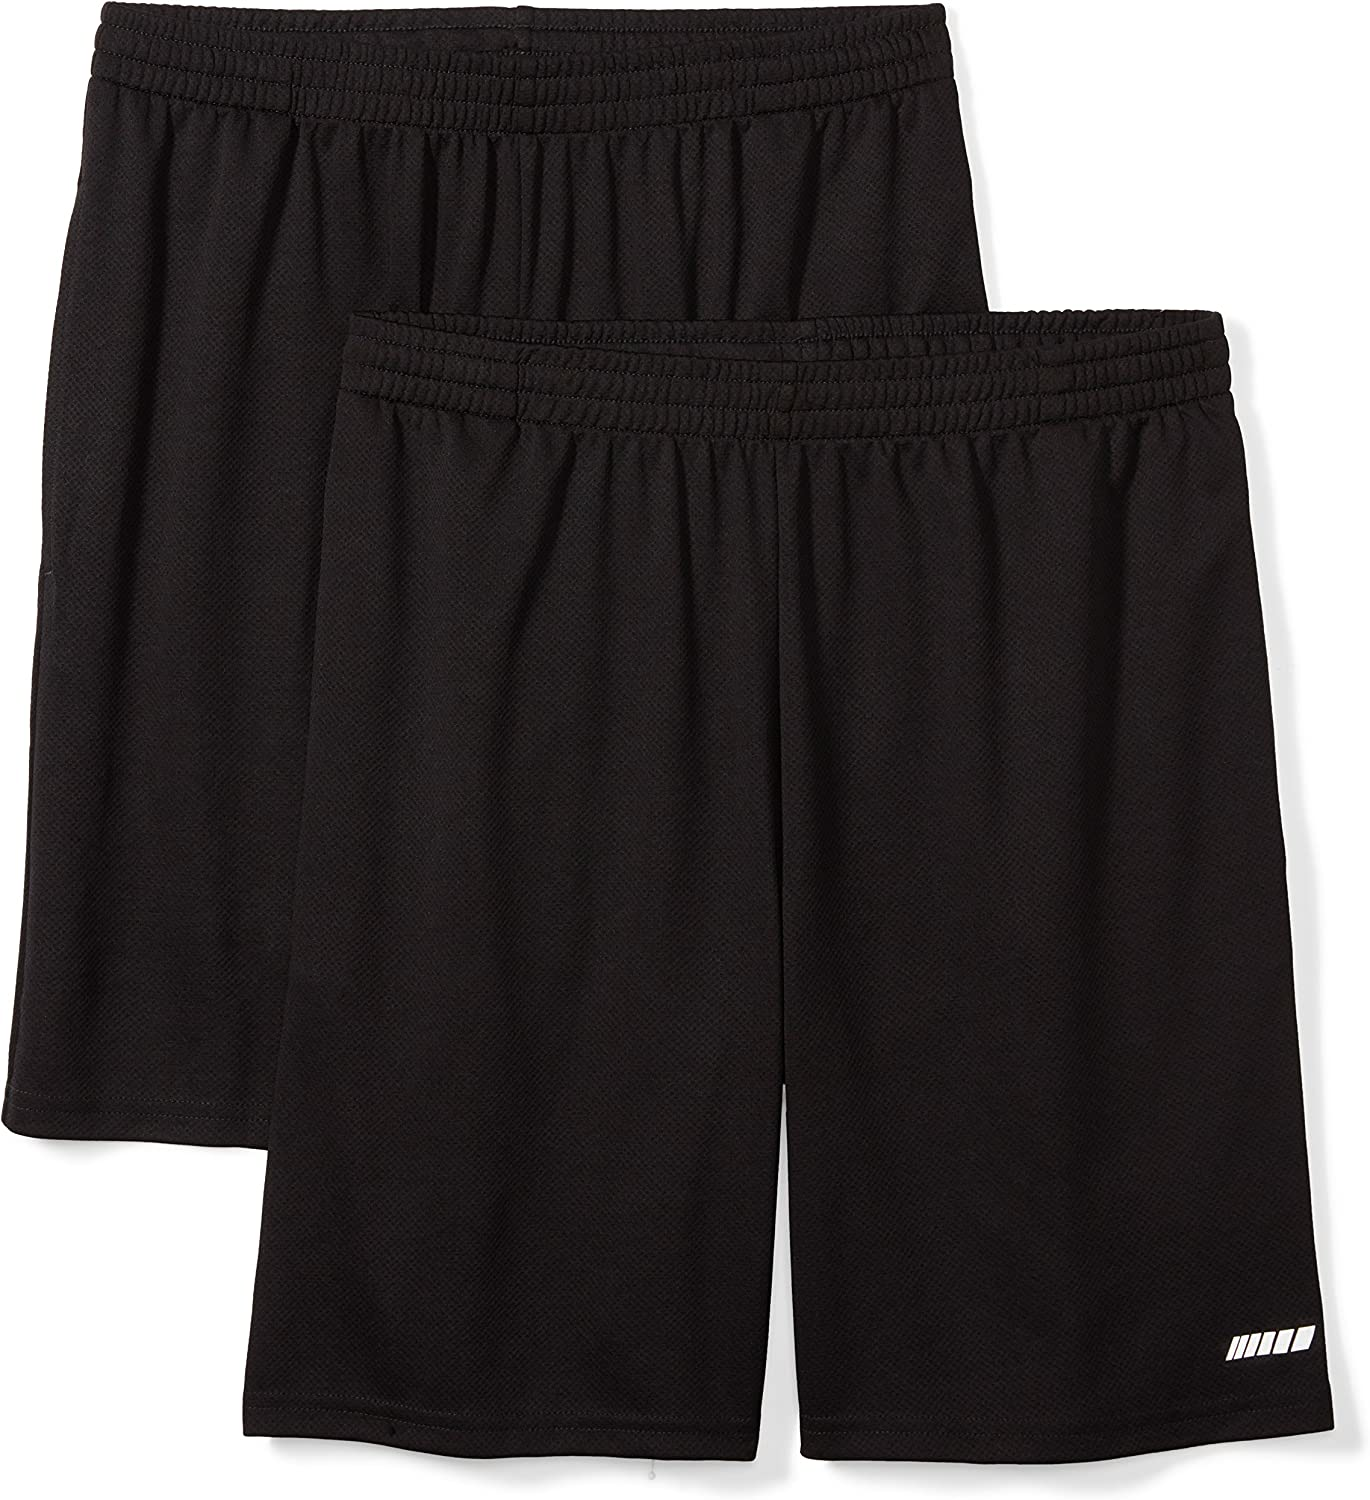 Essentials Men's 2-Pack Loose-Fit Performance Shorts: Clothing